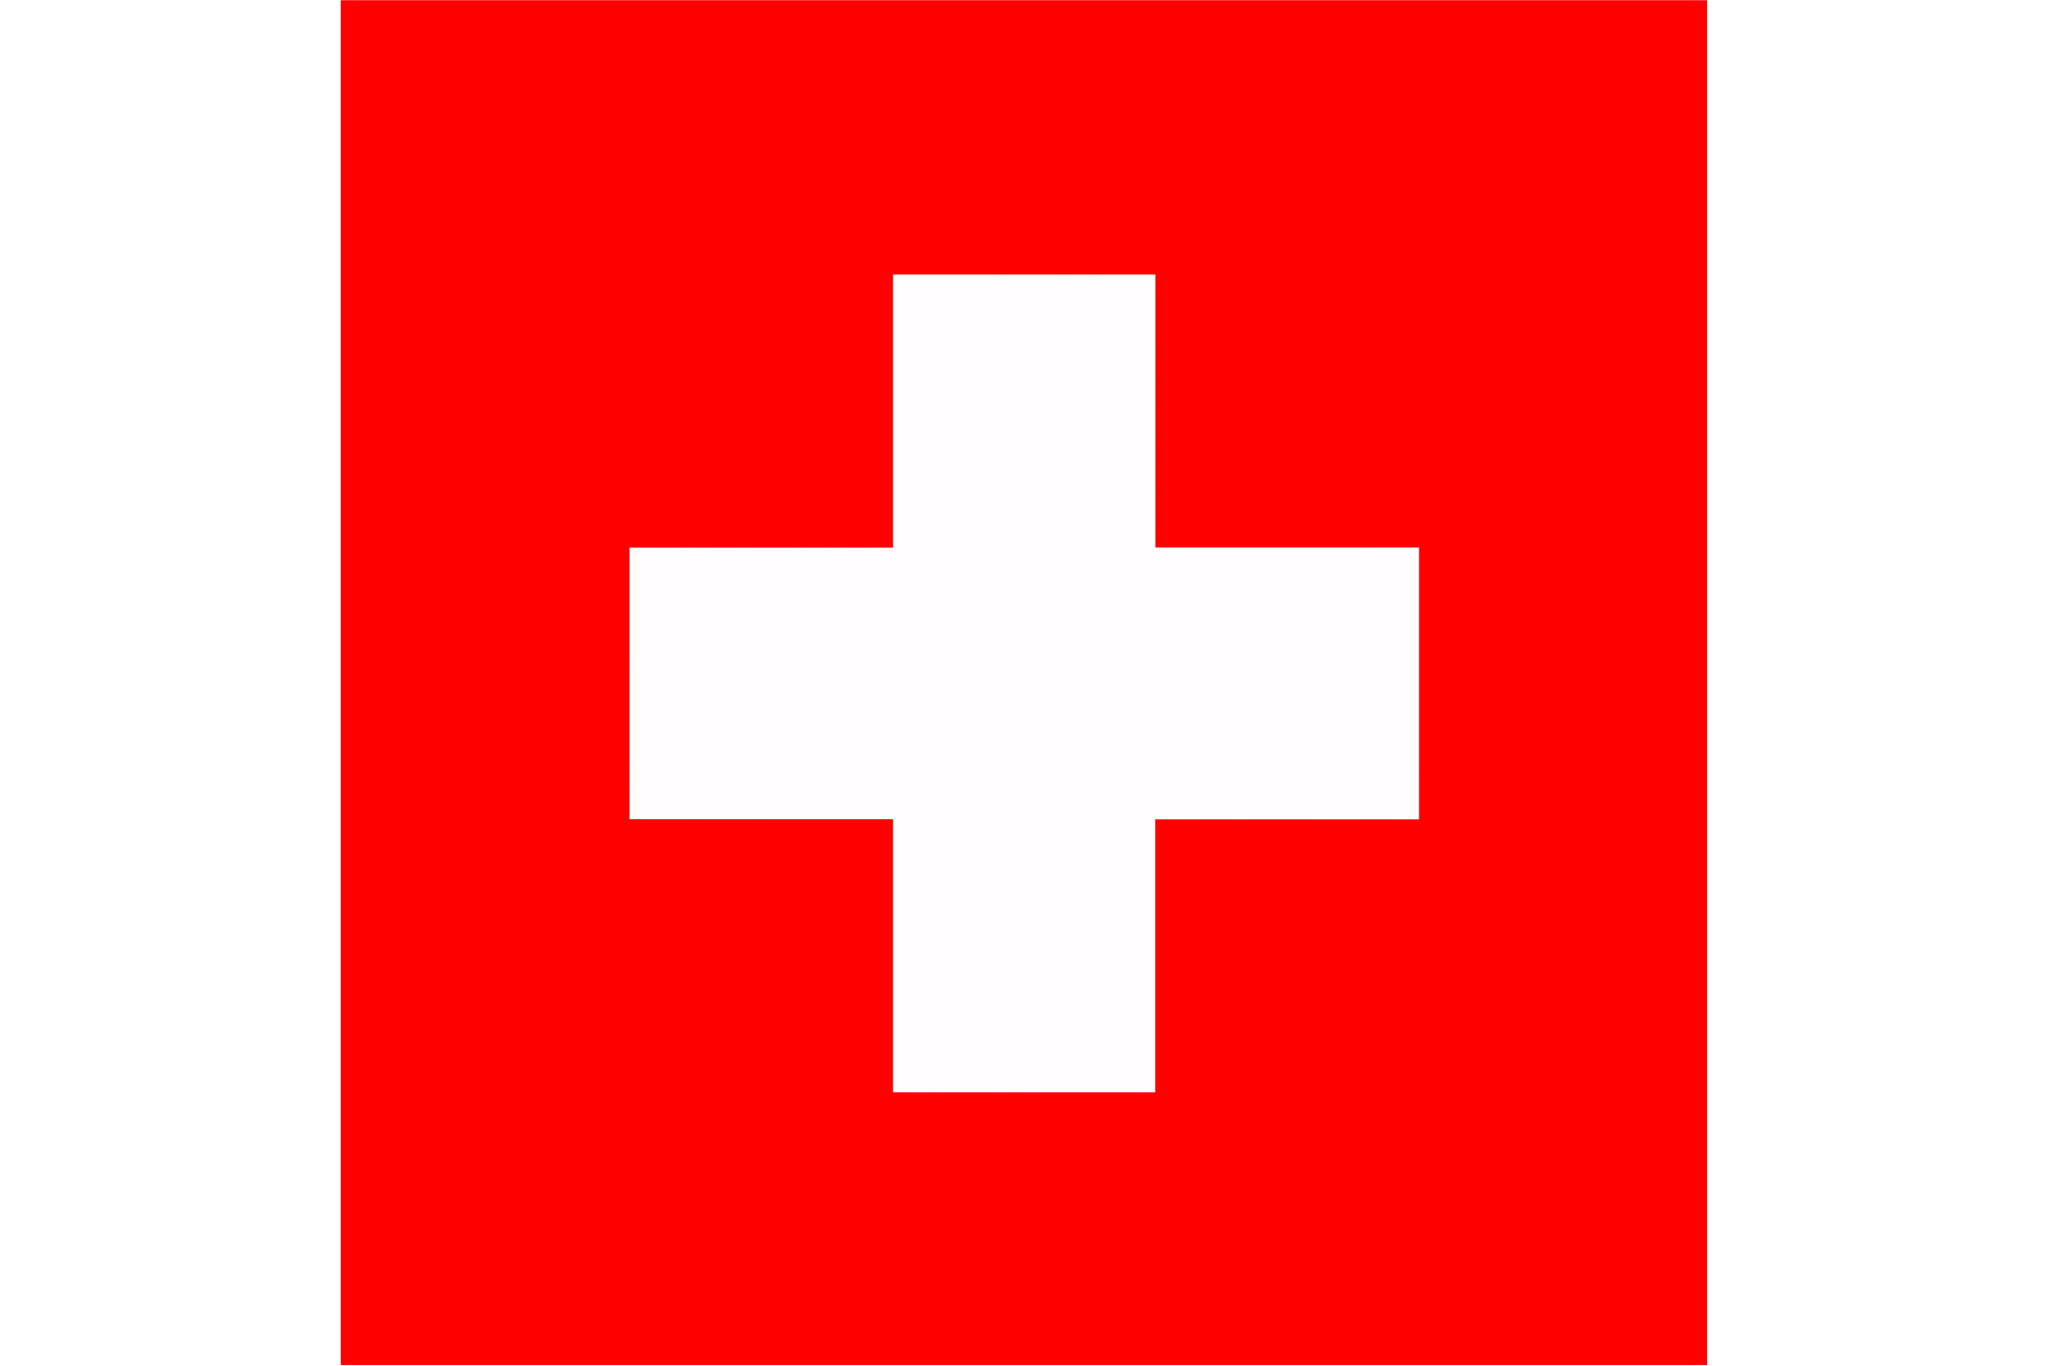 The National Flag of Switzerland is a red square flag with a bold, equilateral white cross in its center.